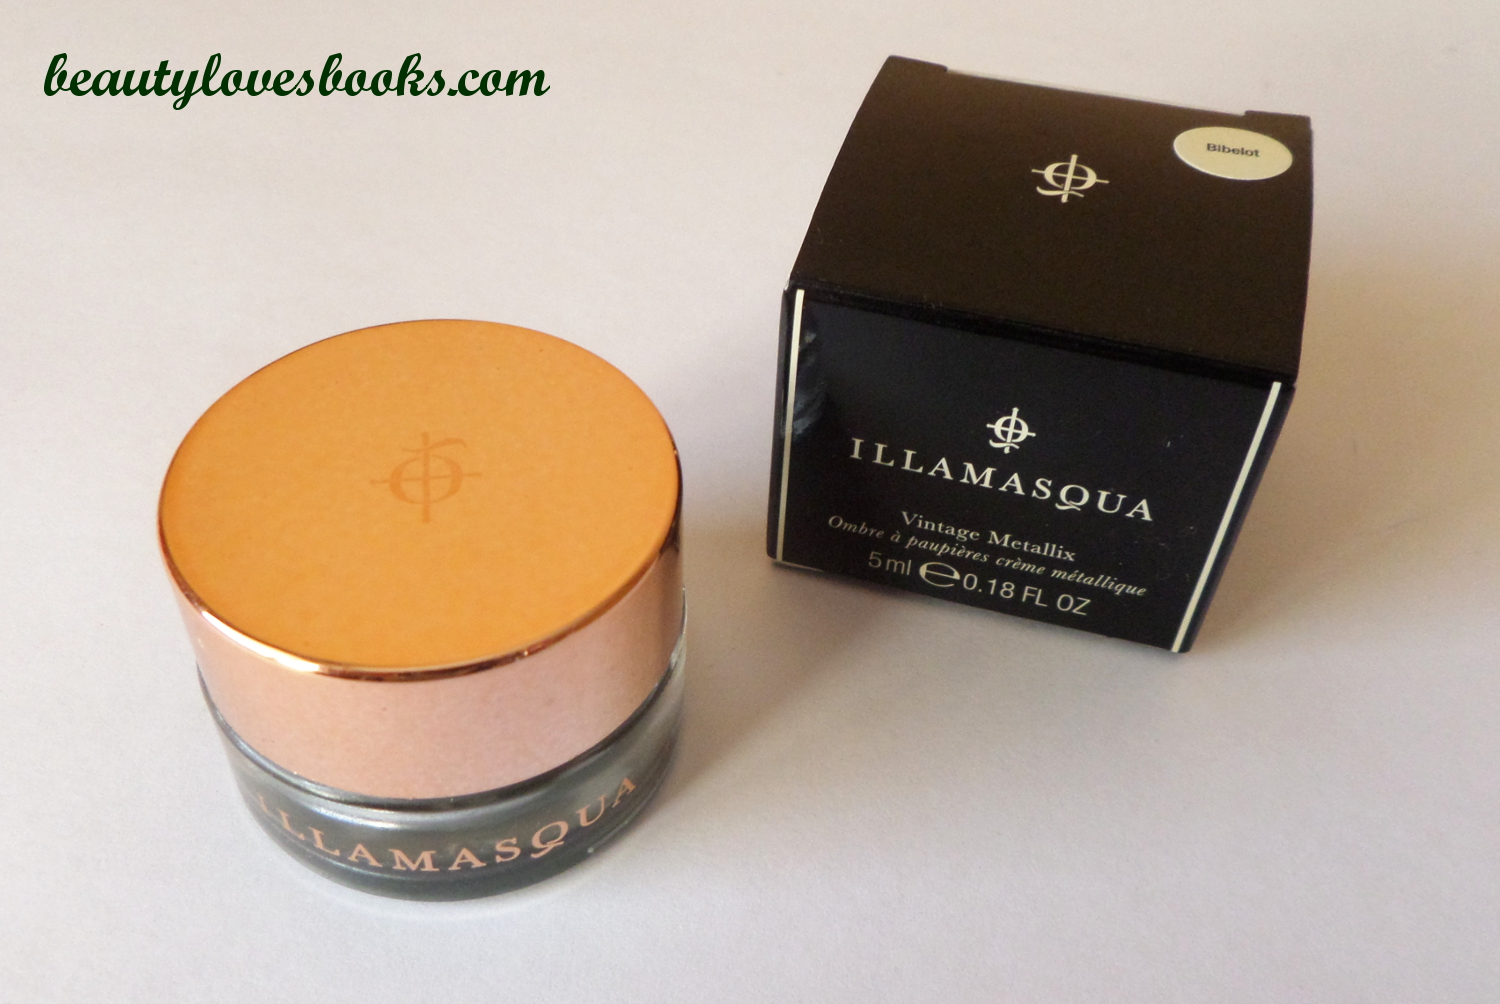 Illamasqua Vintage Metallix eyeshadow in Biblot